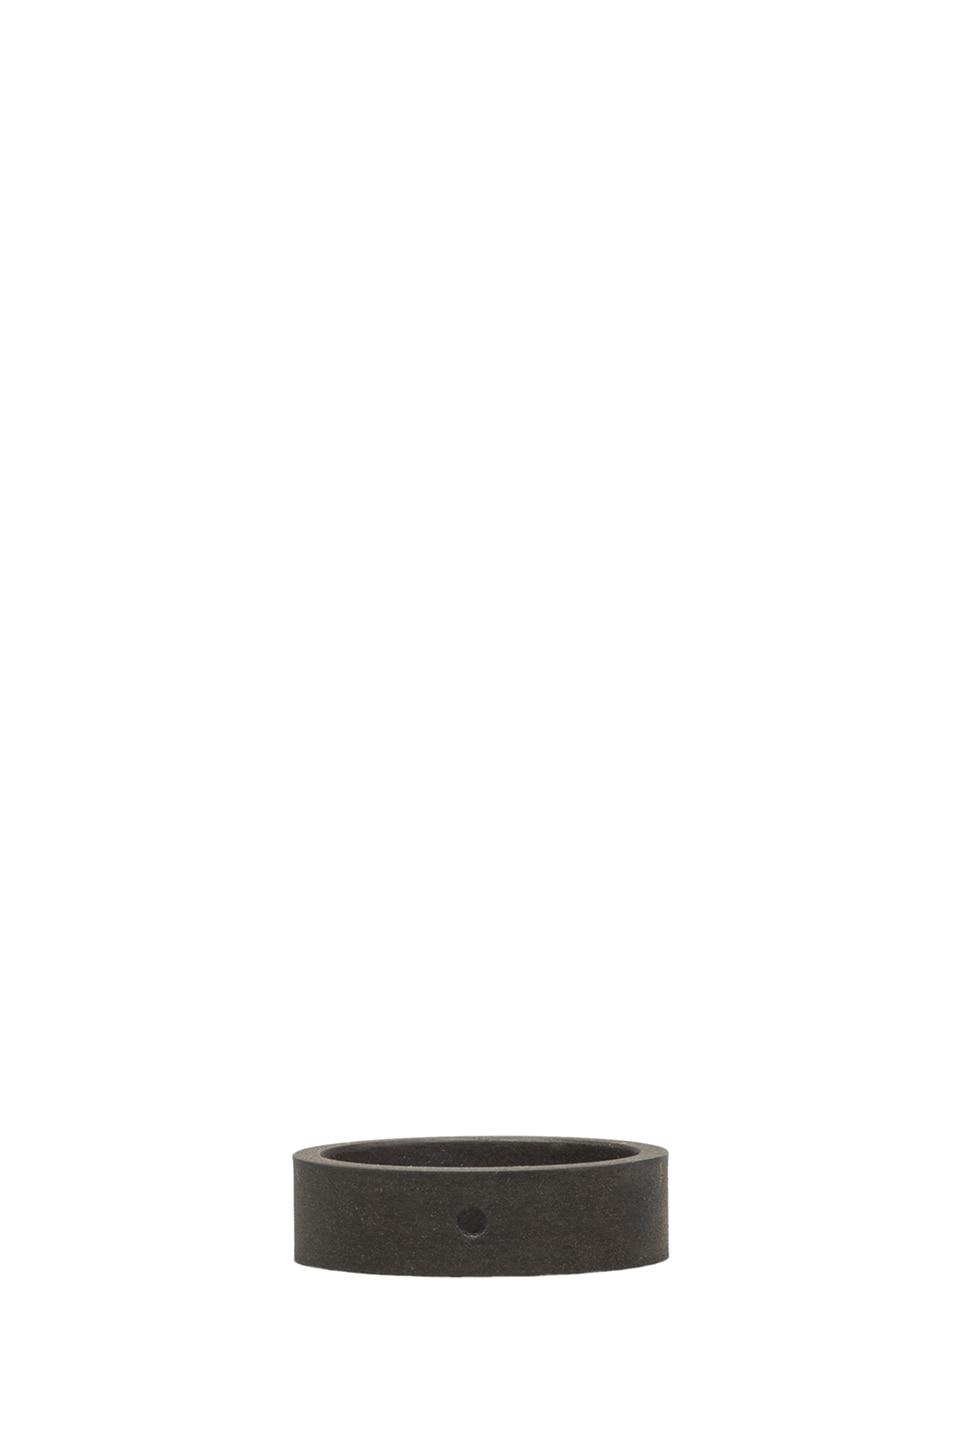 Marmol Radziner Standard Lightweight Stacking Ring in Dark Bronze